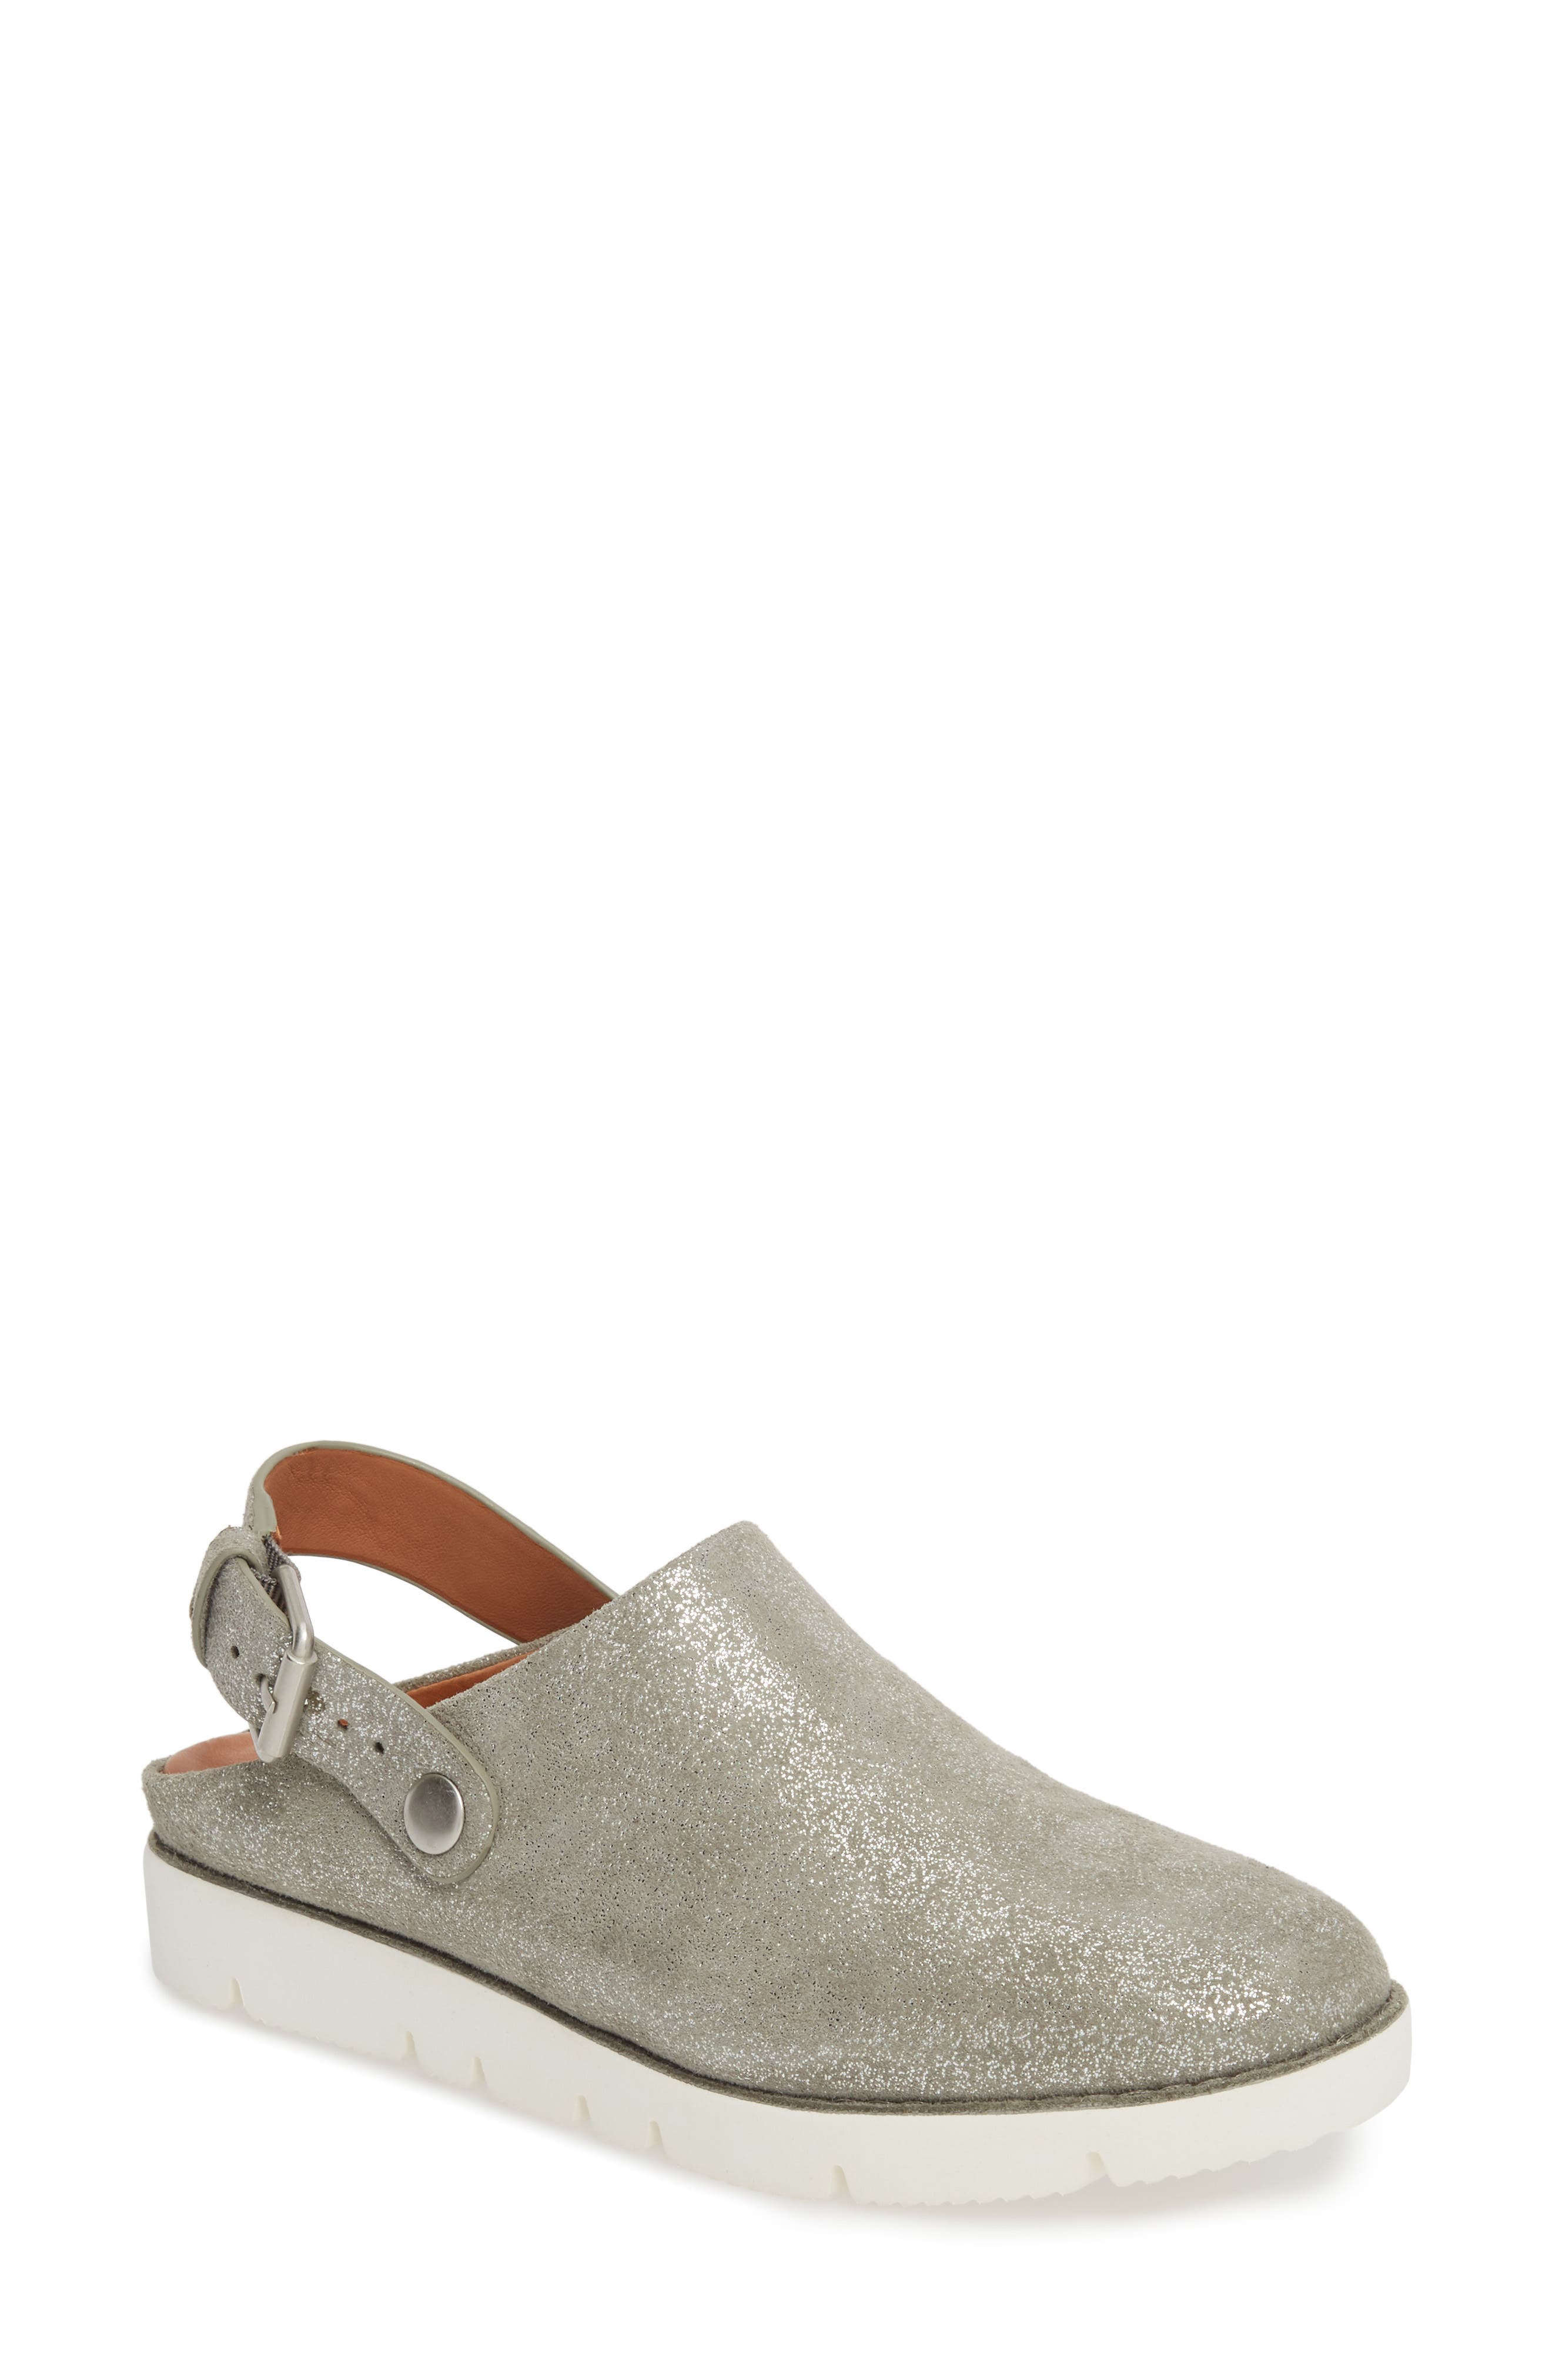 GENTLE SOULS BY KENNETH COLE Esther Convertible Wedge, Main, color, LIGHT PEWTER METALLIC LEATHER